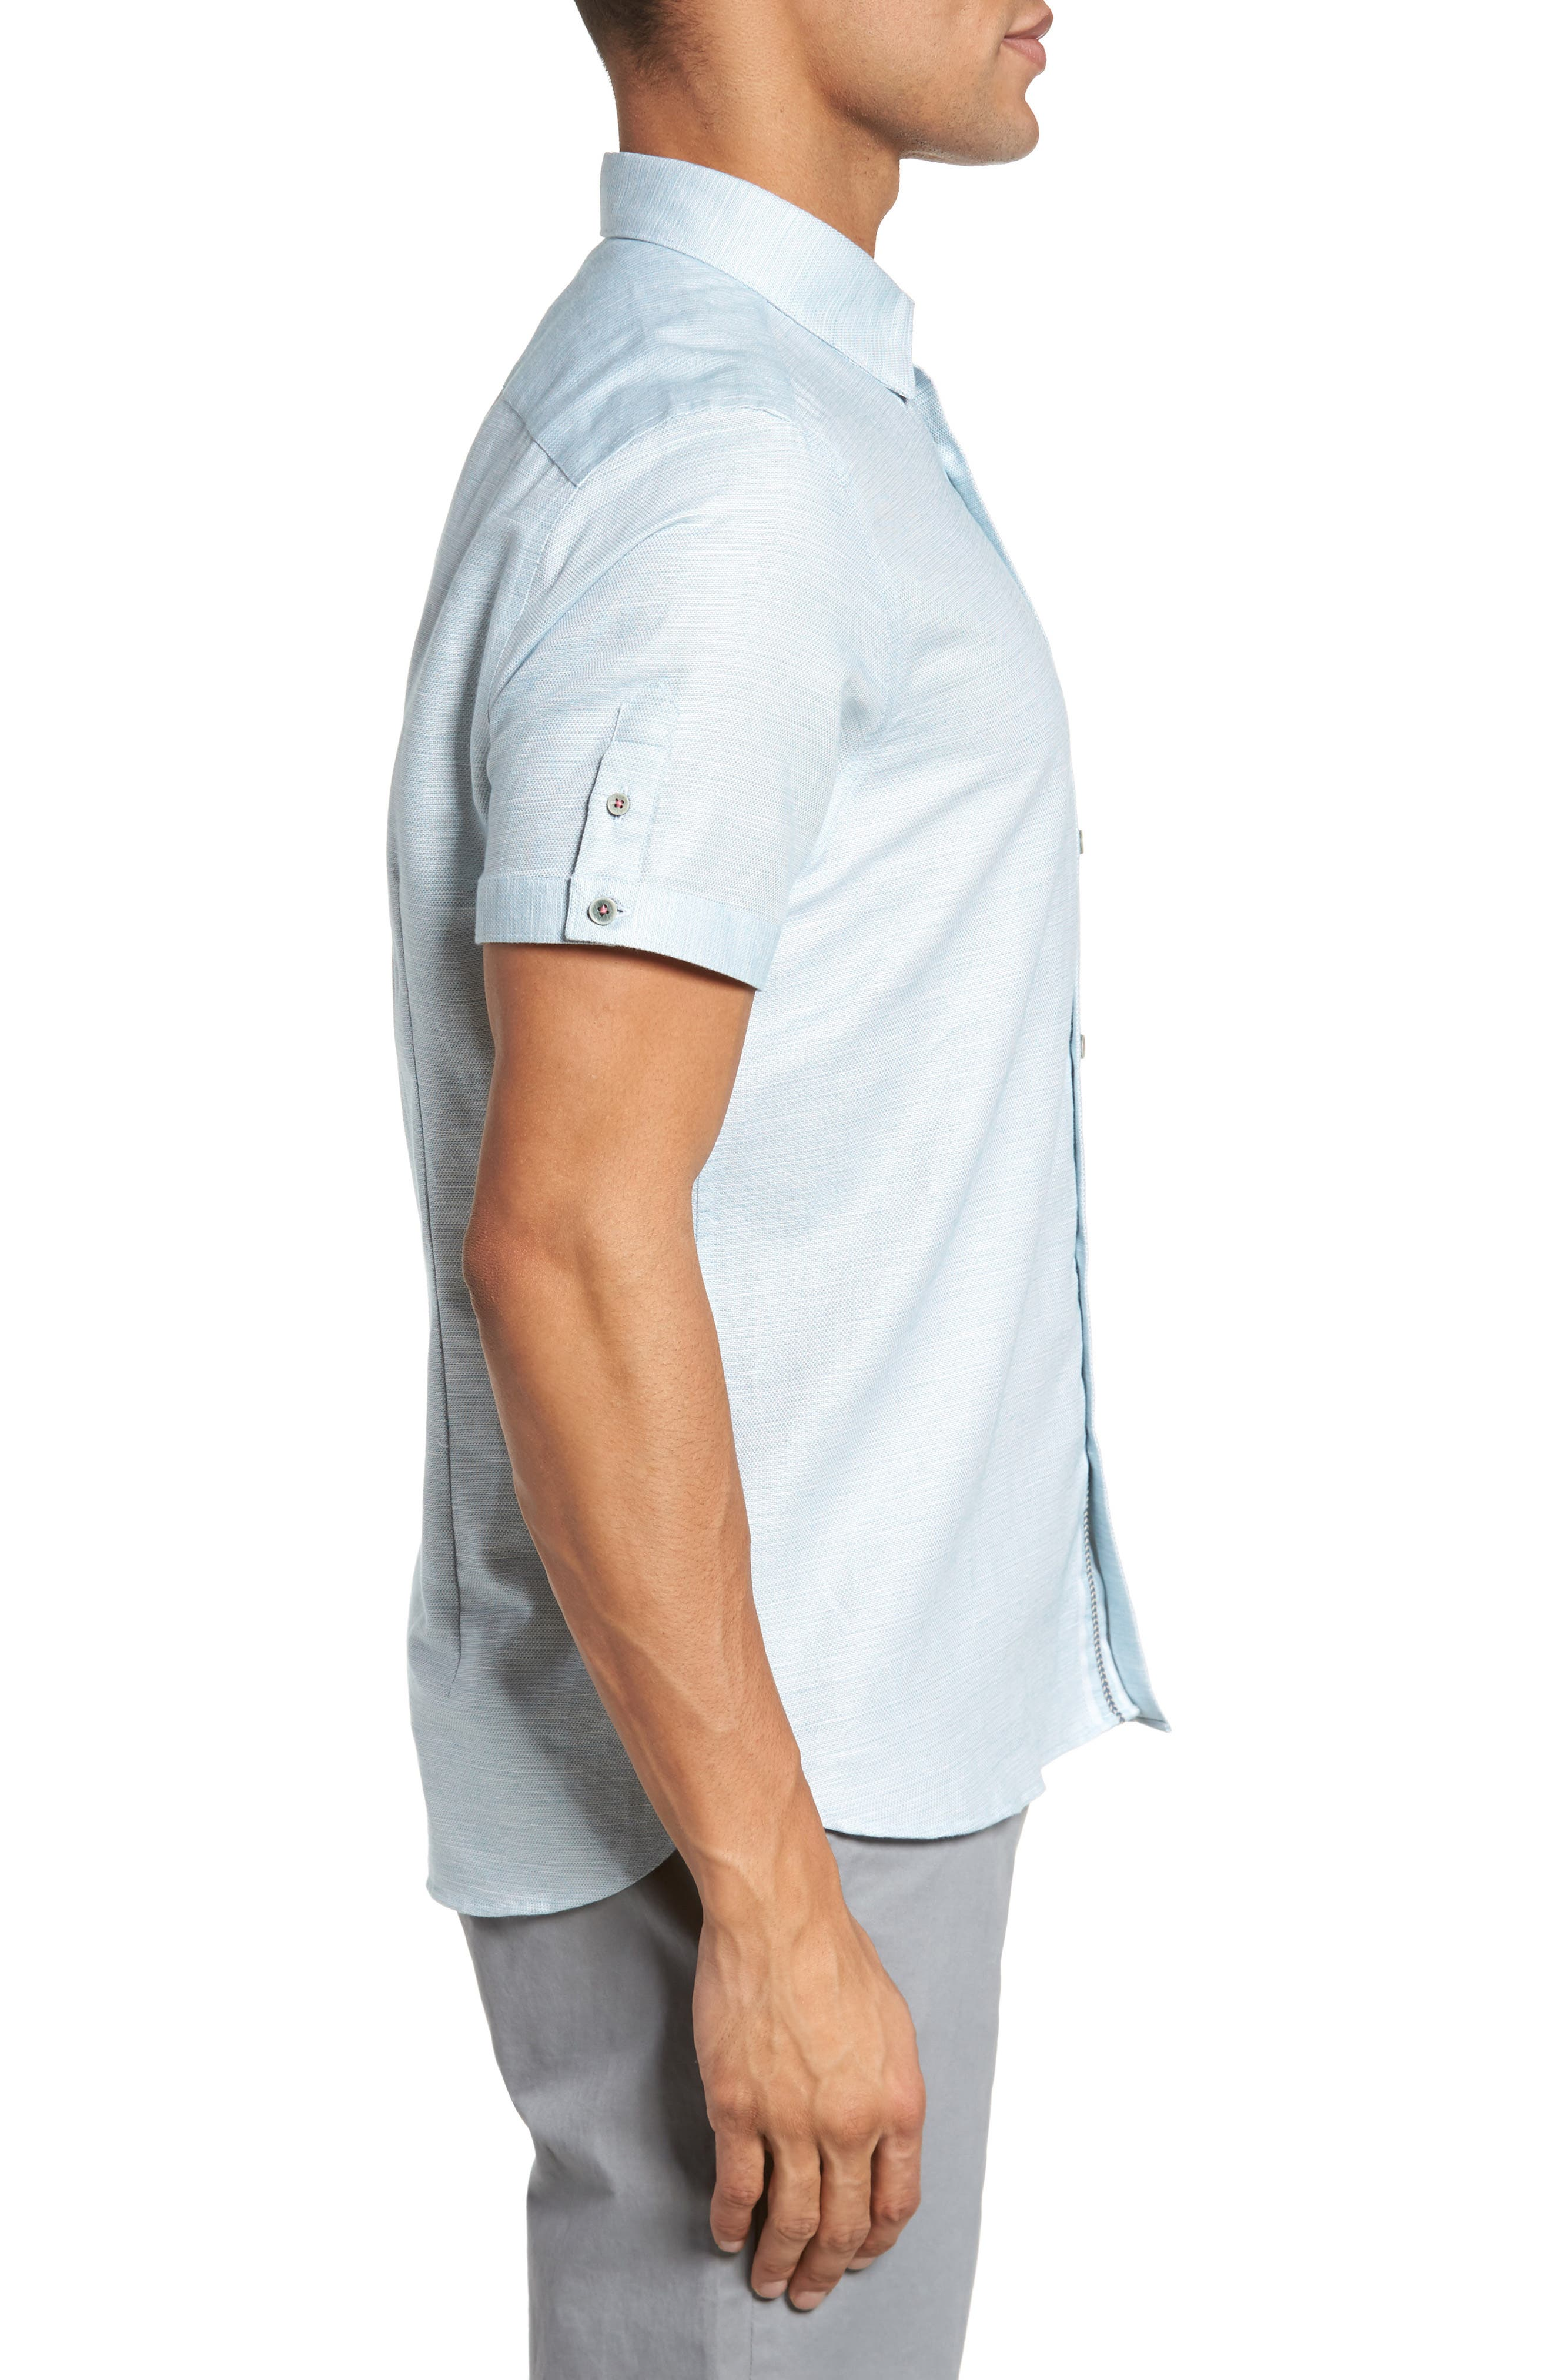 Peezett Short Sleeve Sport Shirt,                             Alternate thumbnail 3, color,                             300